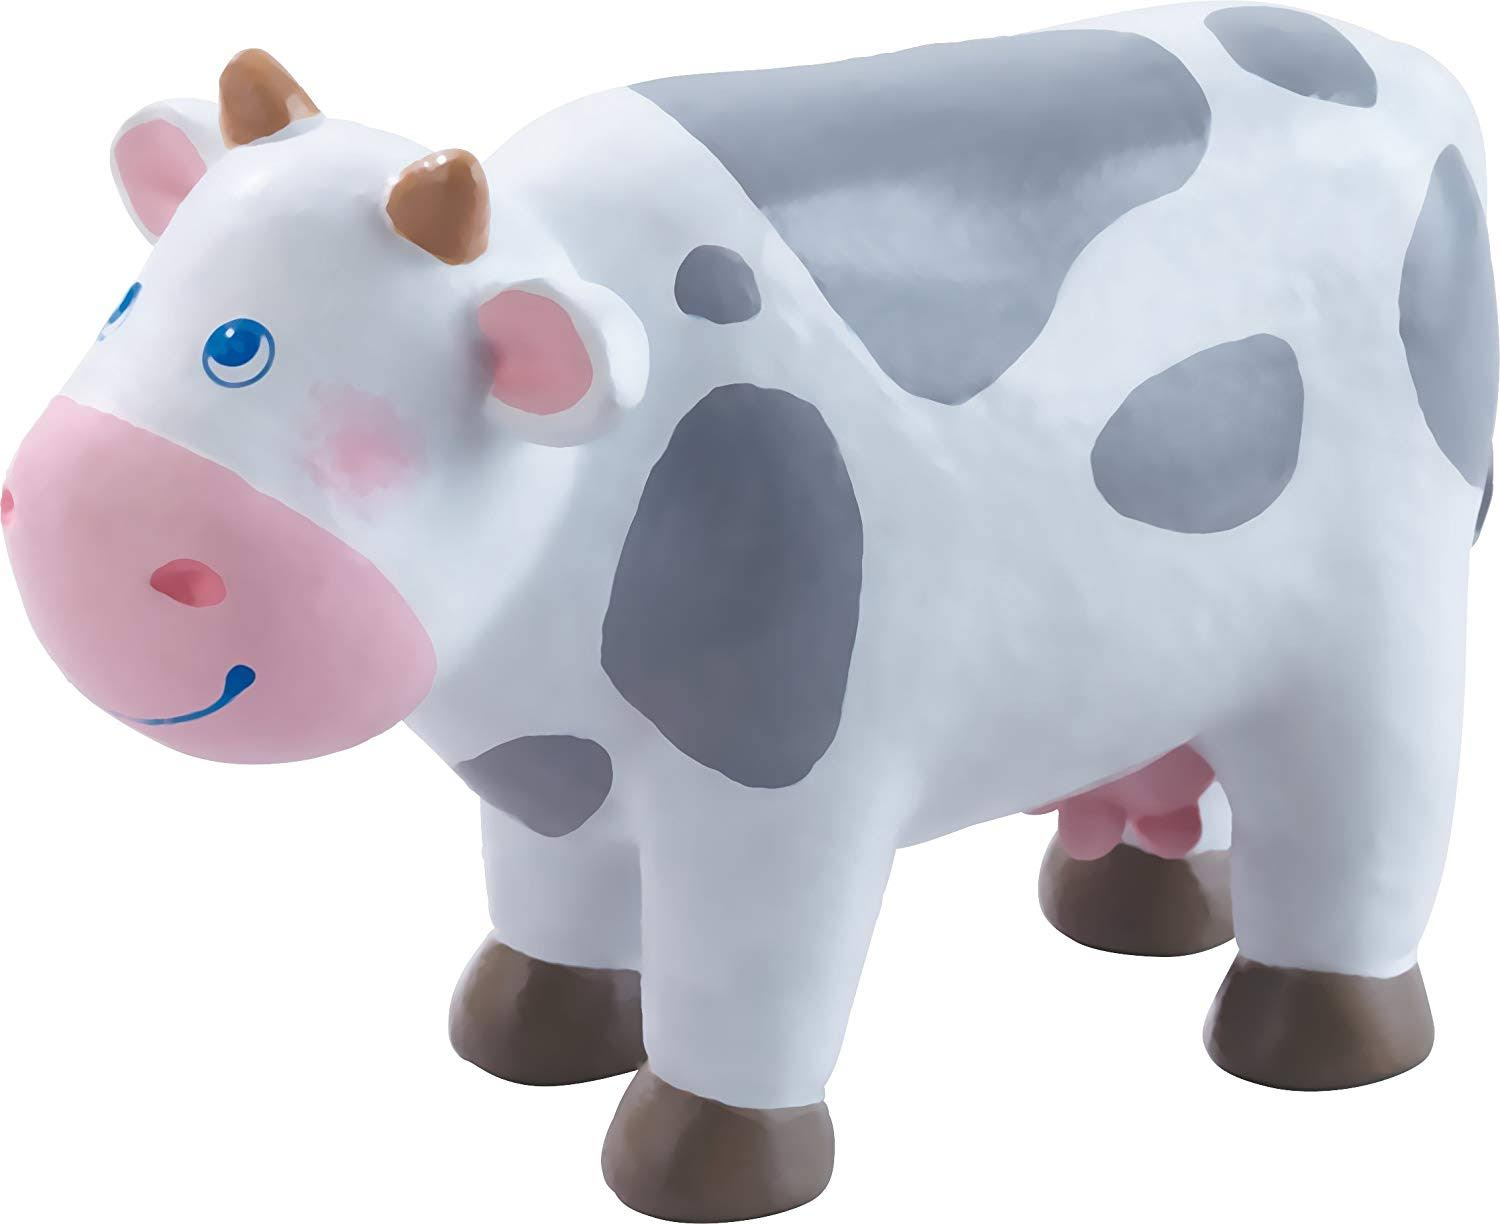 Haba Little Friends Cow Chunky Plastic Farm Animal Toy Figure - 4""